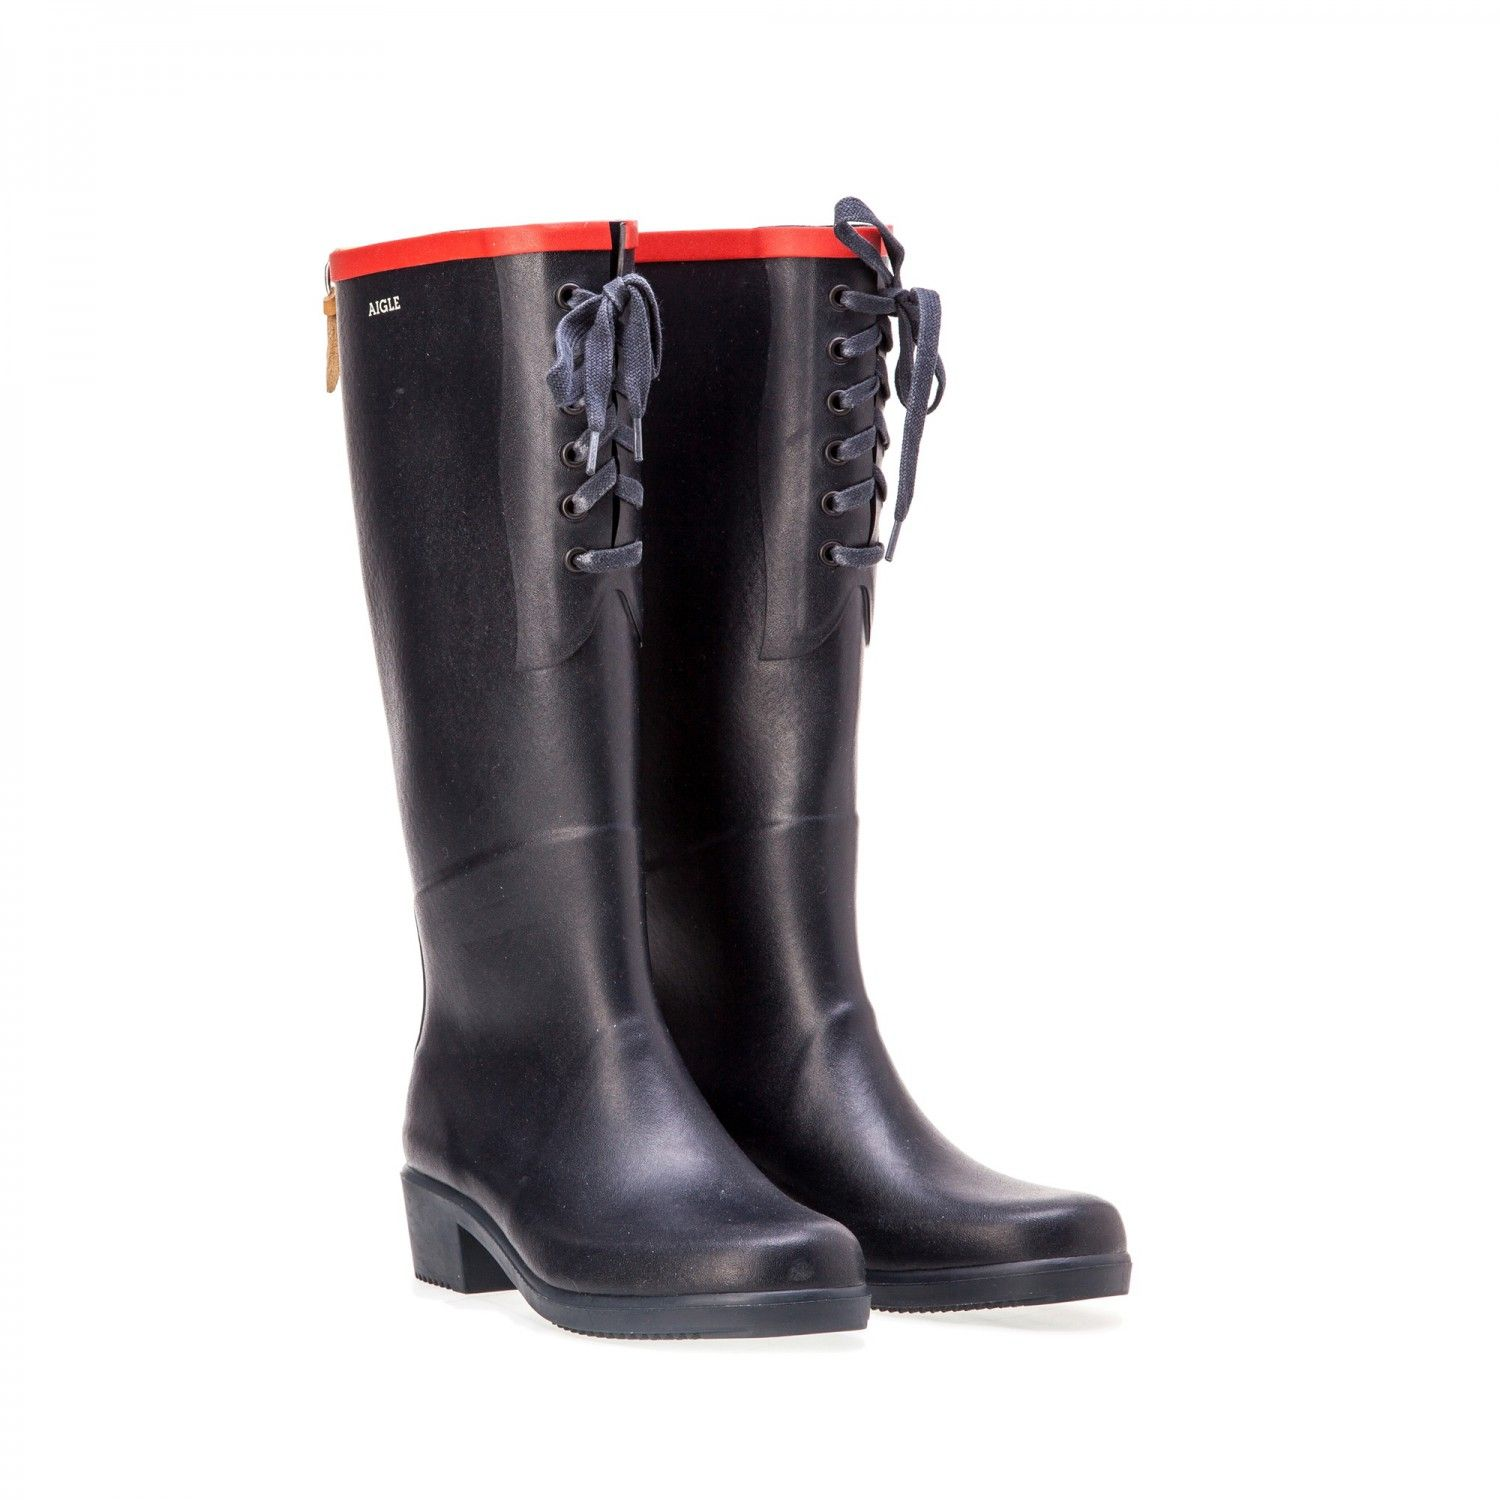 3bf44522cdb8e5 Bottes femme marine/rouge AIGLE- MISS JULIETTE LACETS -T 35. | in my ...